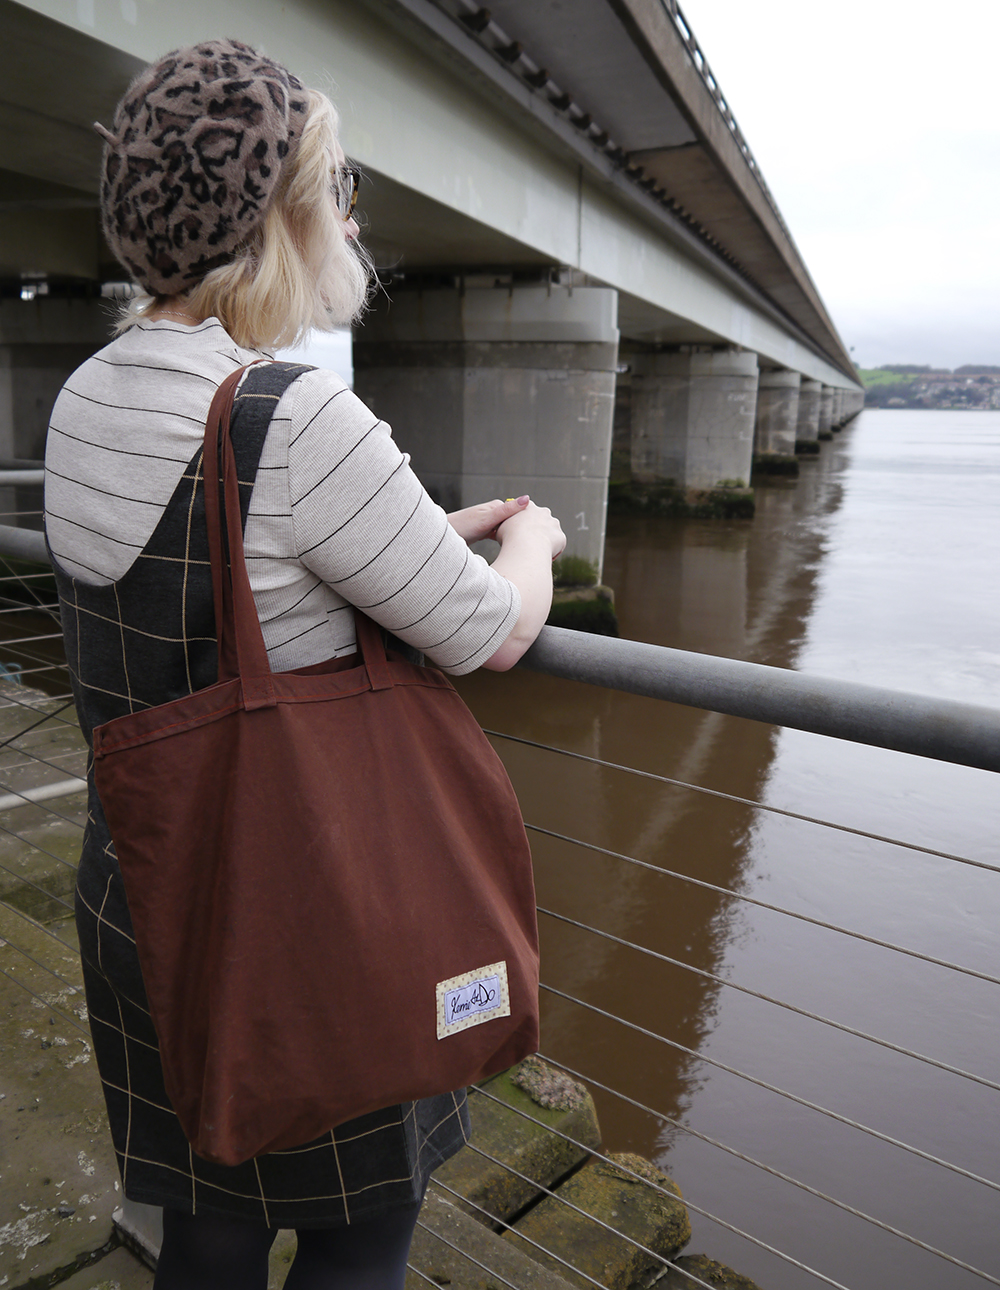 IOLLA Muir tortoise shell frames, leopard print beret, kawaii spoon necklace, layering checks, Scottish winter style, Scottish fashion blogger, Kerrie Aldo waxed cotton bag, Tay Road Bridge, Dundee style, what to wear in winter in Scotland, January weather in Scotland